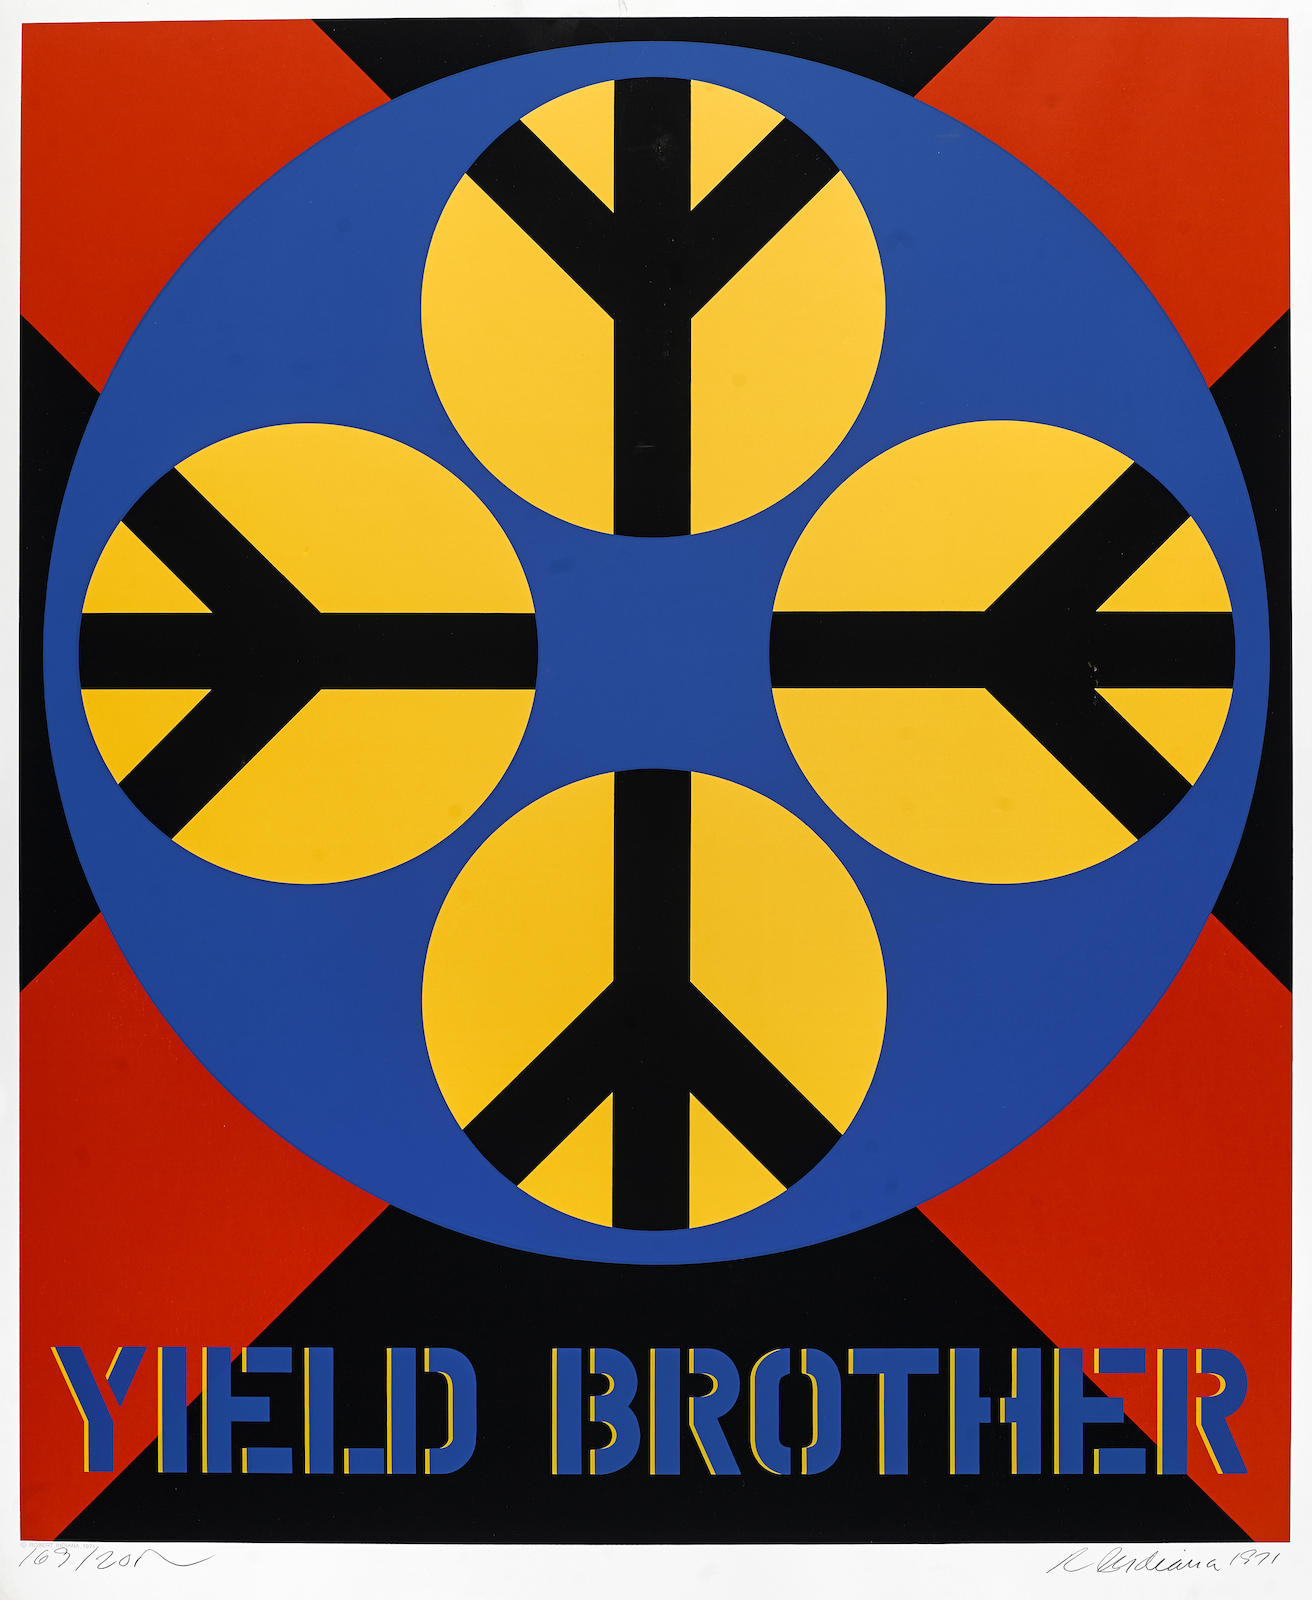 Robert Indiana-Three Plates, from Decade Series (S. 65, 67, 70). Titles include: Yield Brother (S. 65); Brooklyn Bridge (S. 67); Parrot (S. 70)-1971